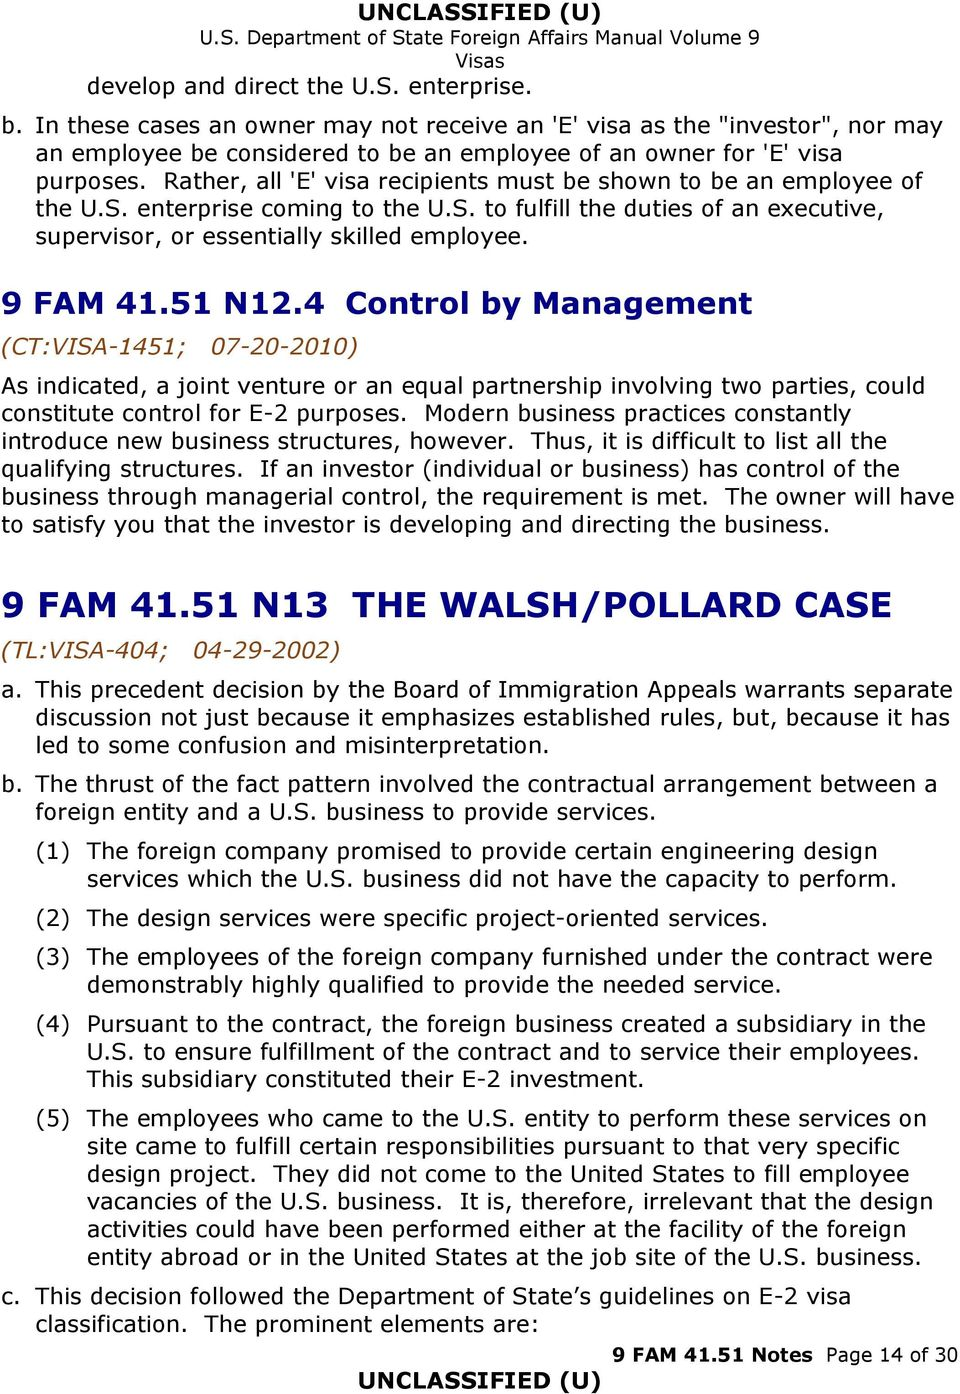 51 N12.4 Control by Management (CT:VISA-1451; 07-20-2010) As indicated, a joint venture or an equal partnership involving two parties, could constitute control for E-2 purposes.